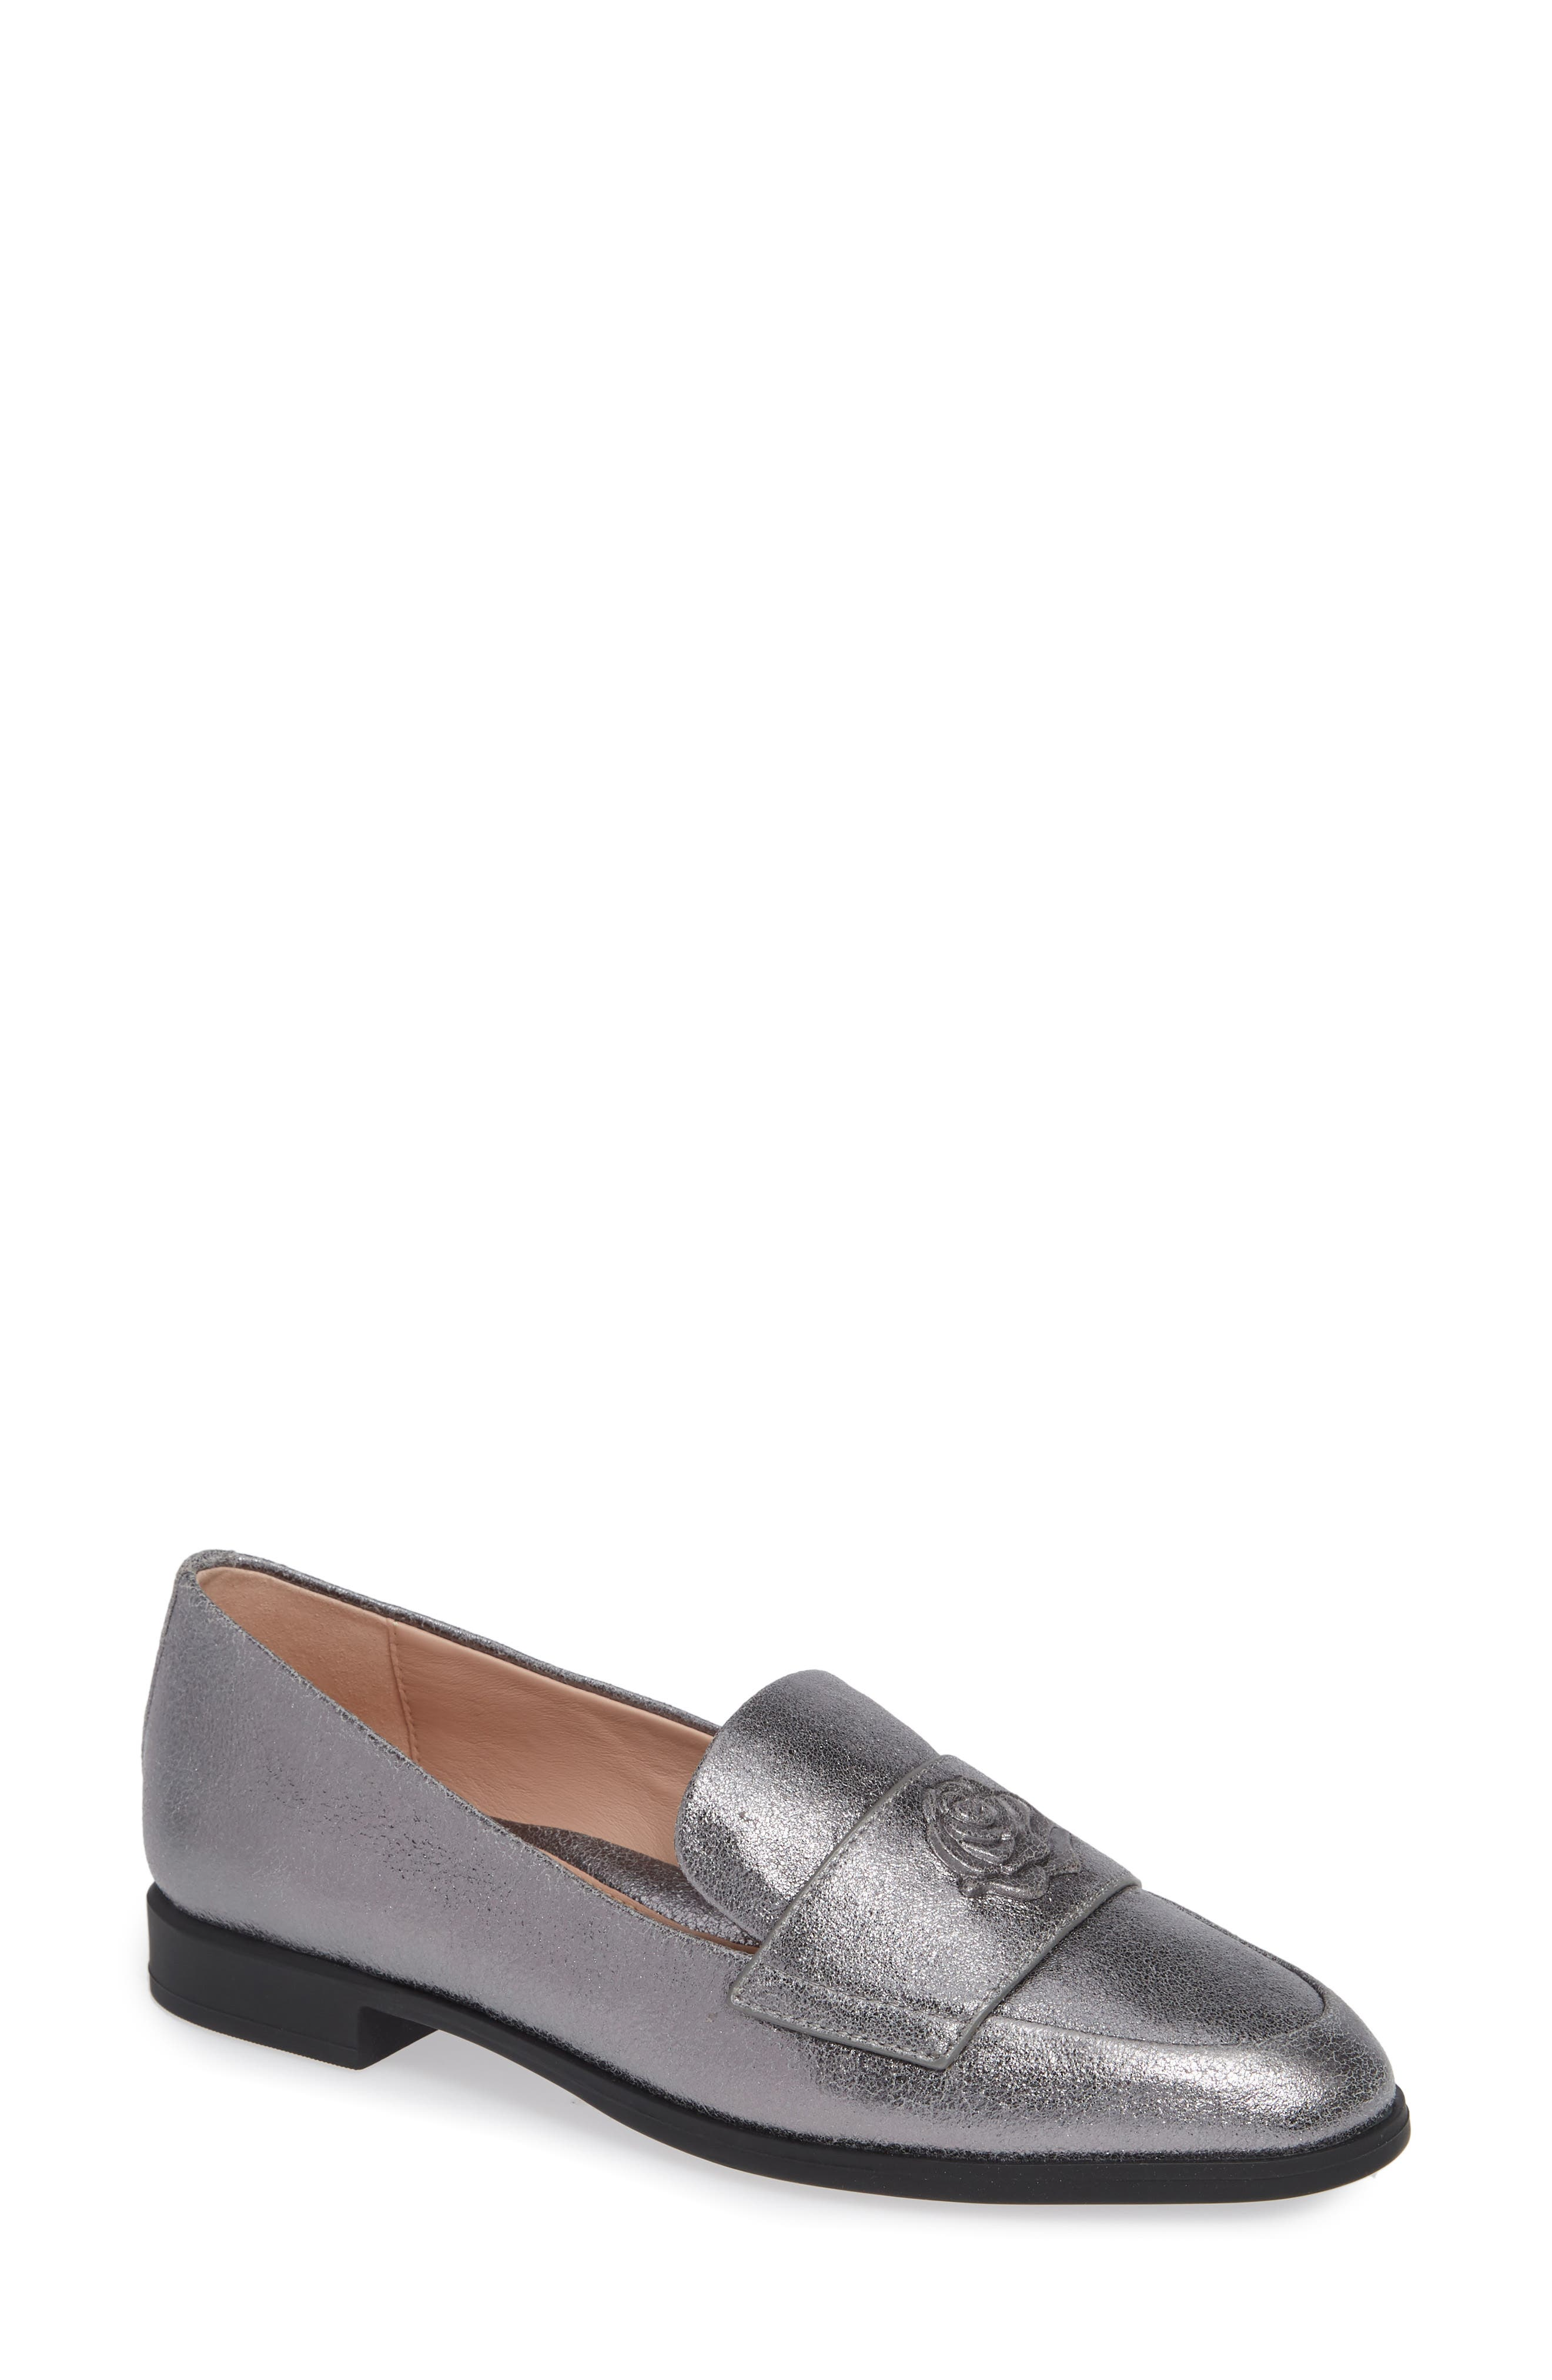 Blossom Loafer,                             Main thumbnail 1, color,                             GUNMETAL LEATHER